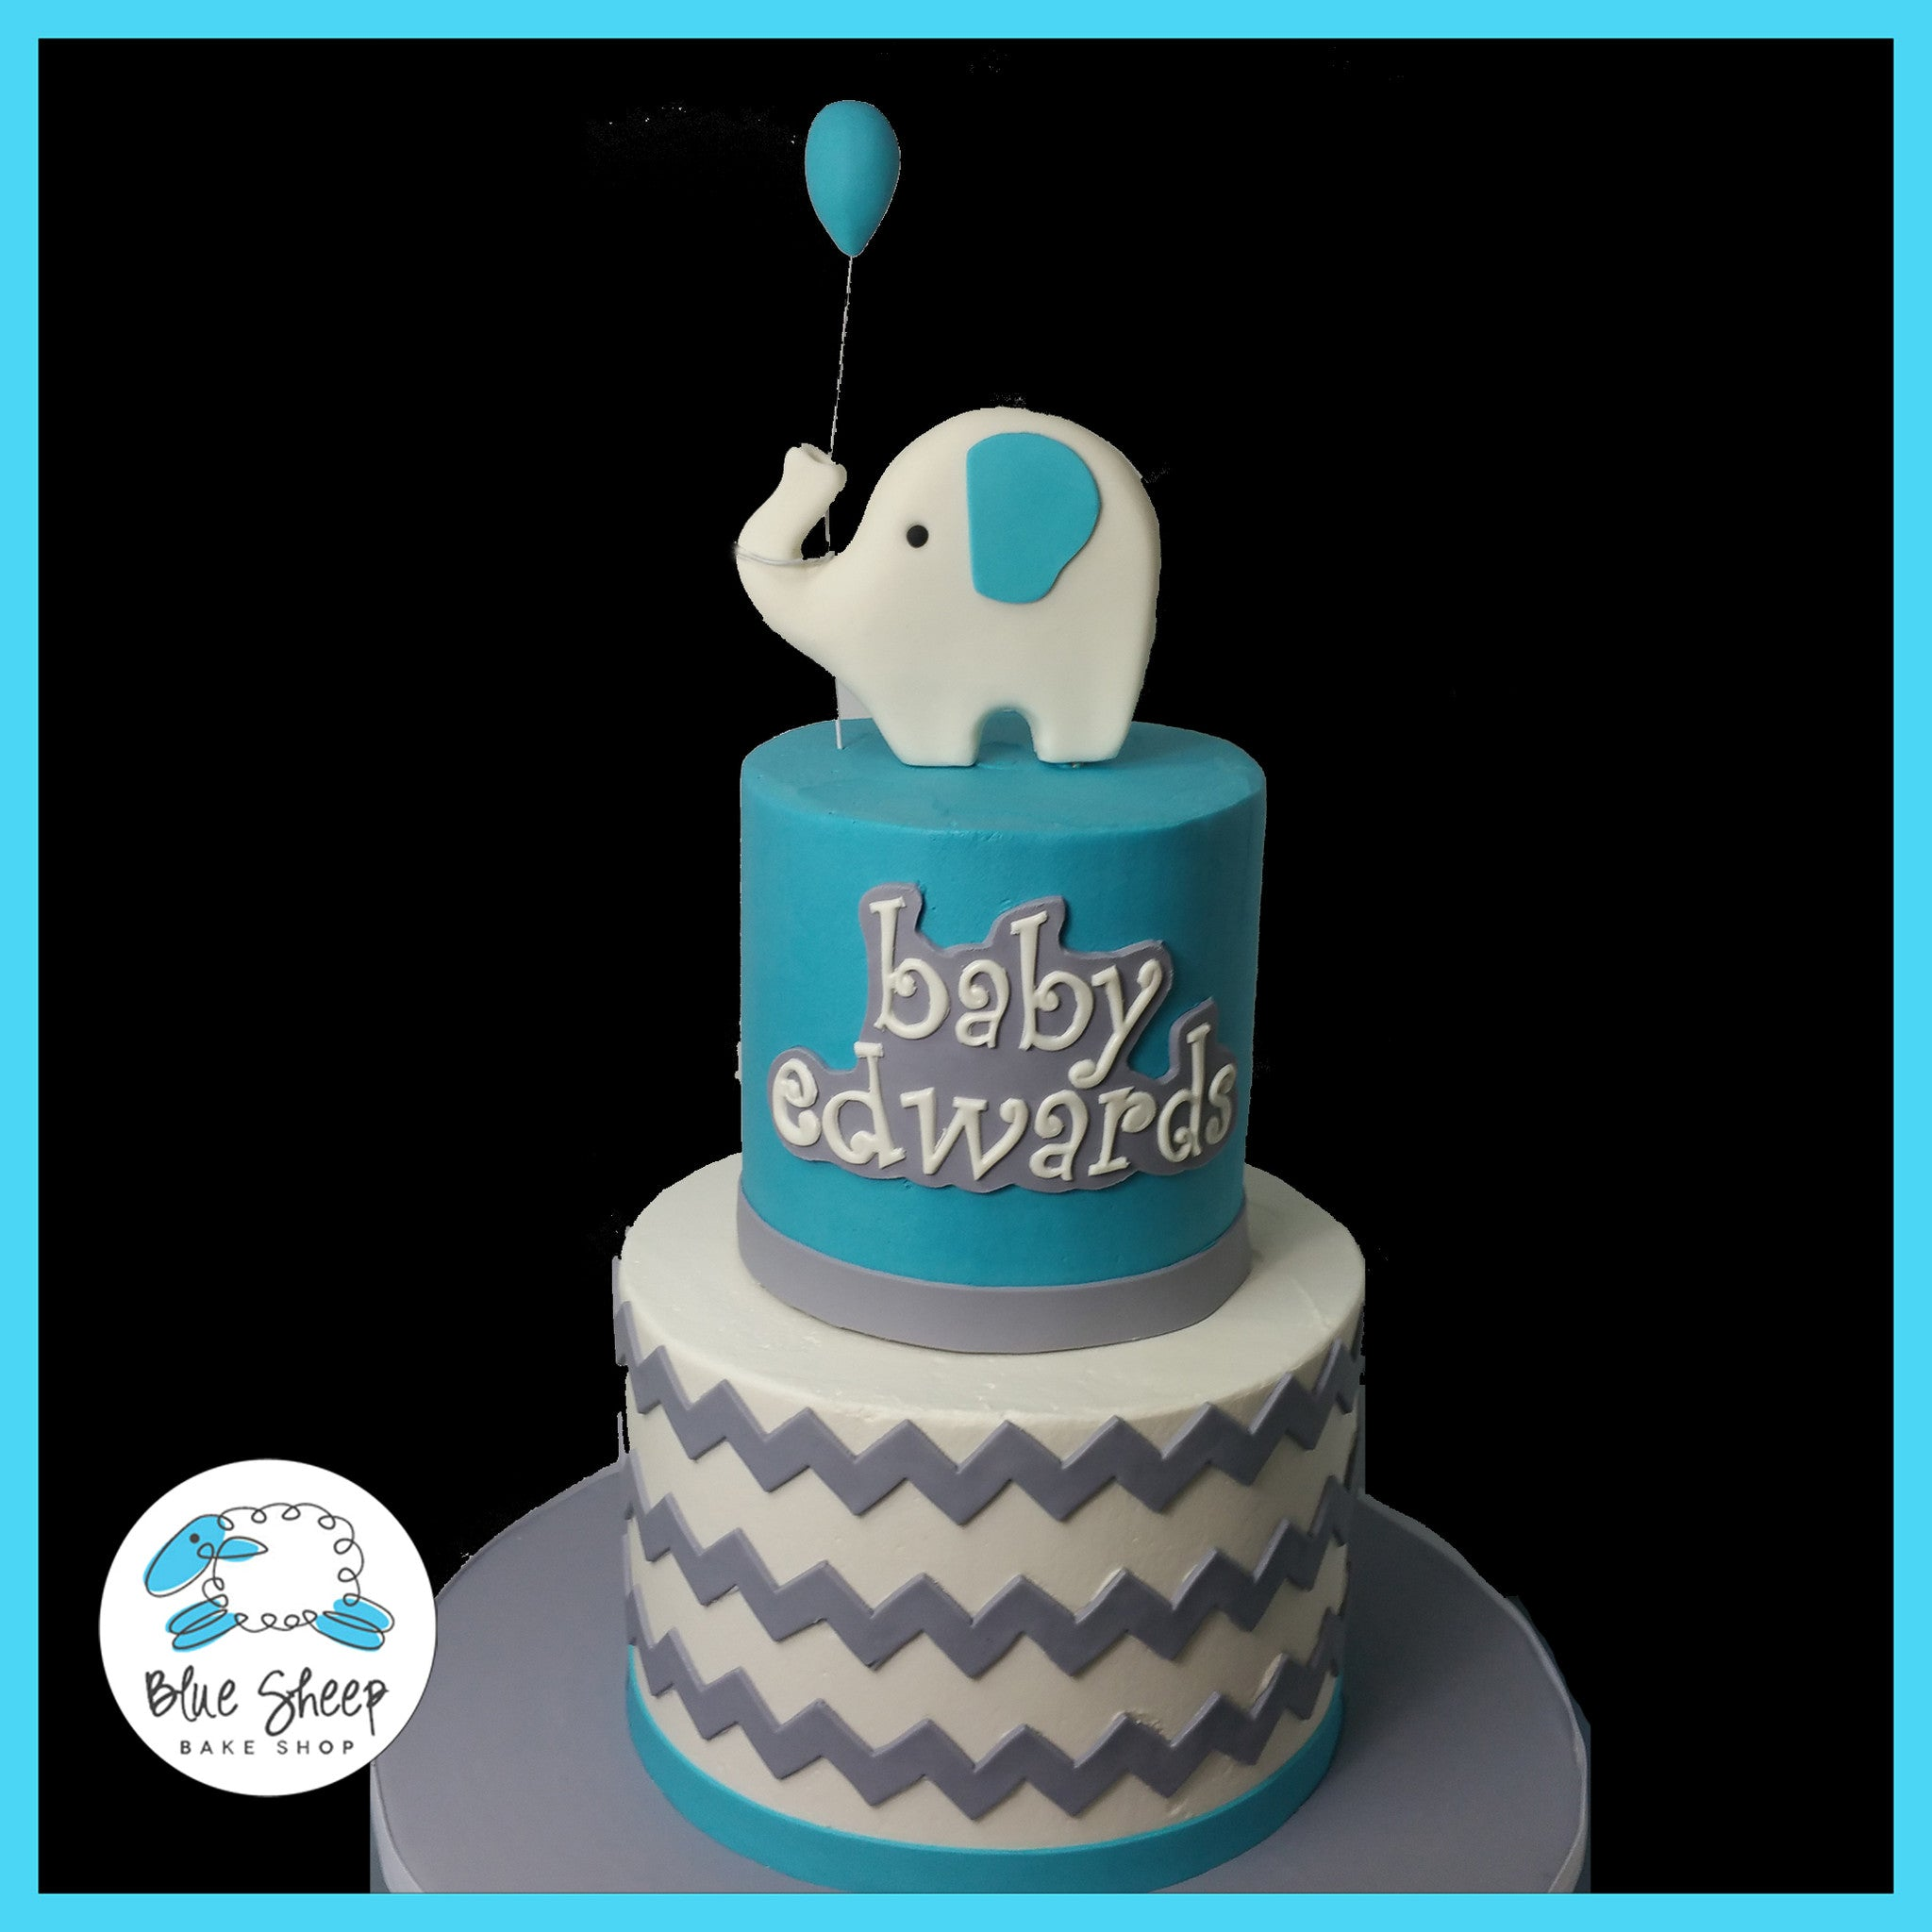 Elephant and Chevron Baby Shower Cake Blue Sheep Bake Shop